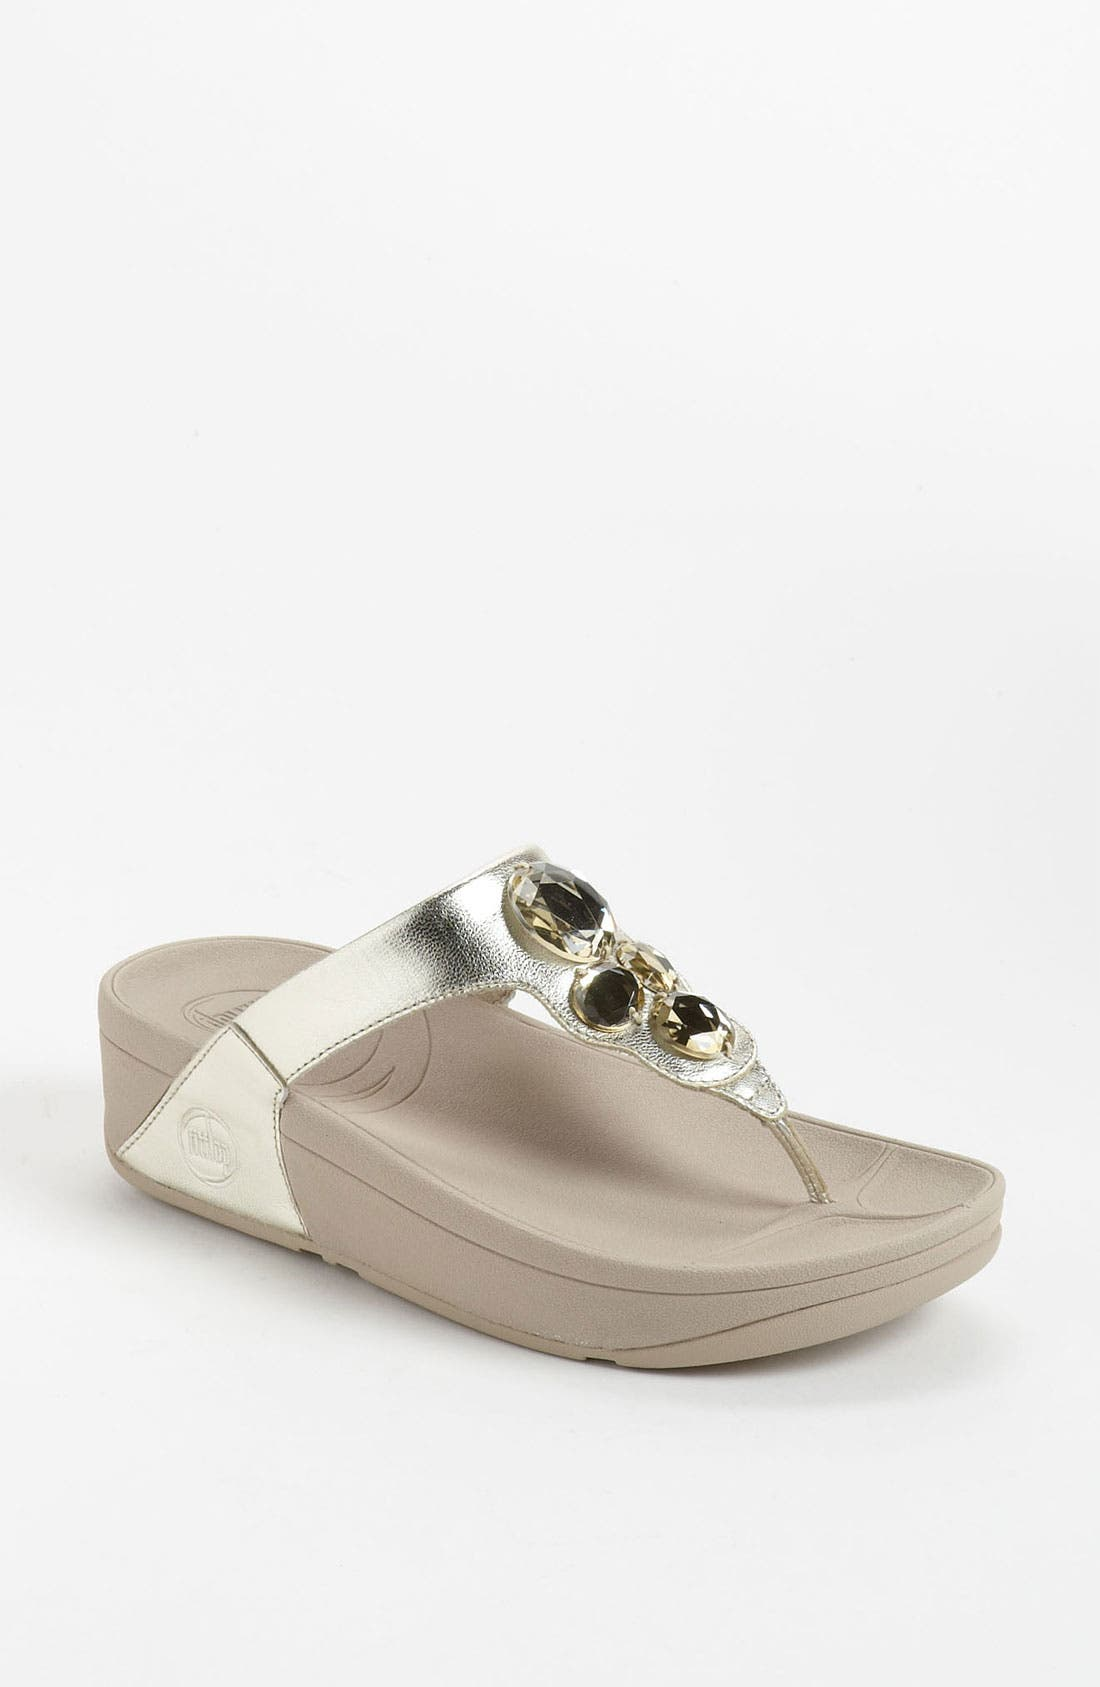 Main Image - FitFlop 'Lunetta' Sandal